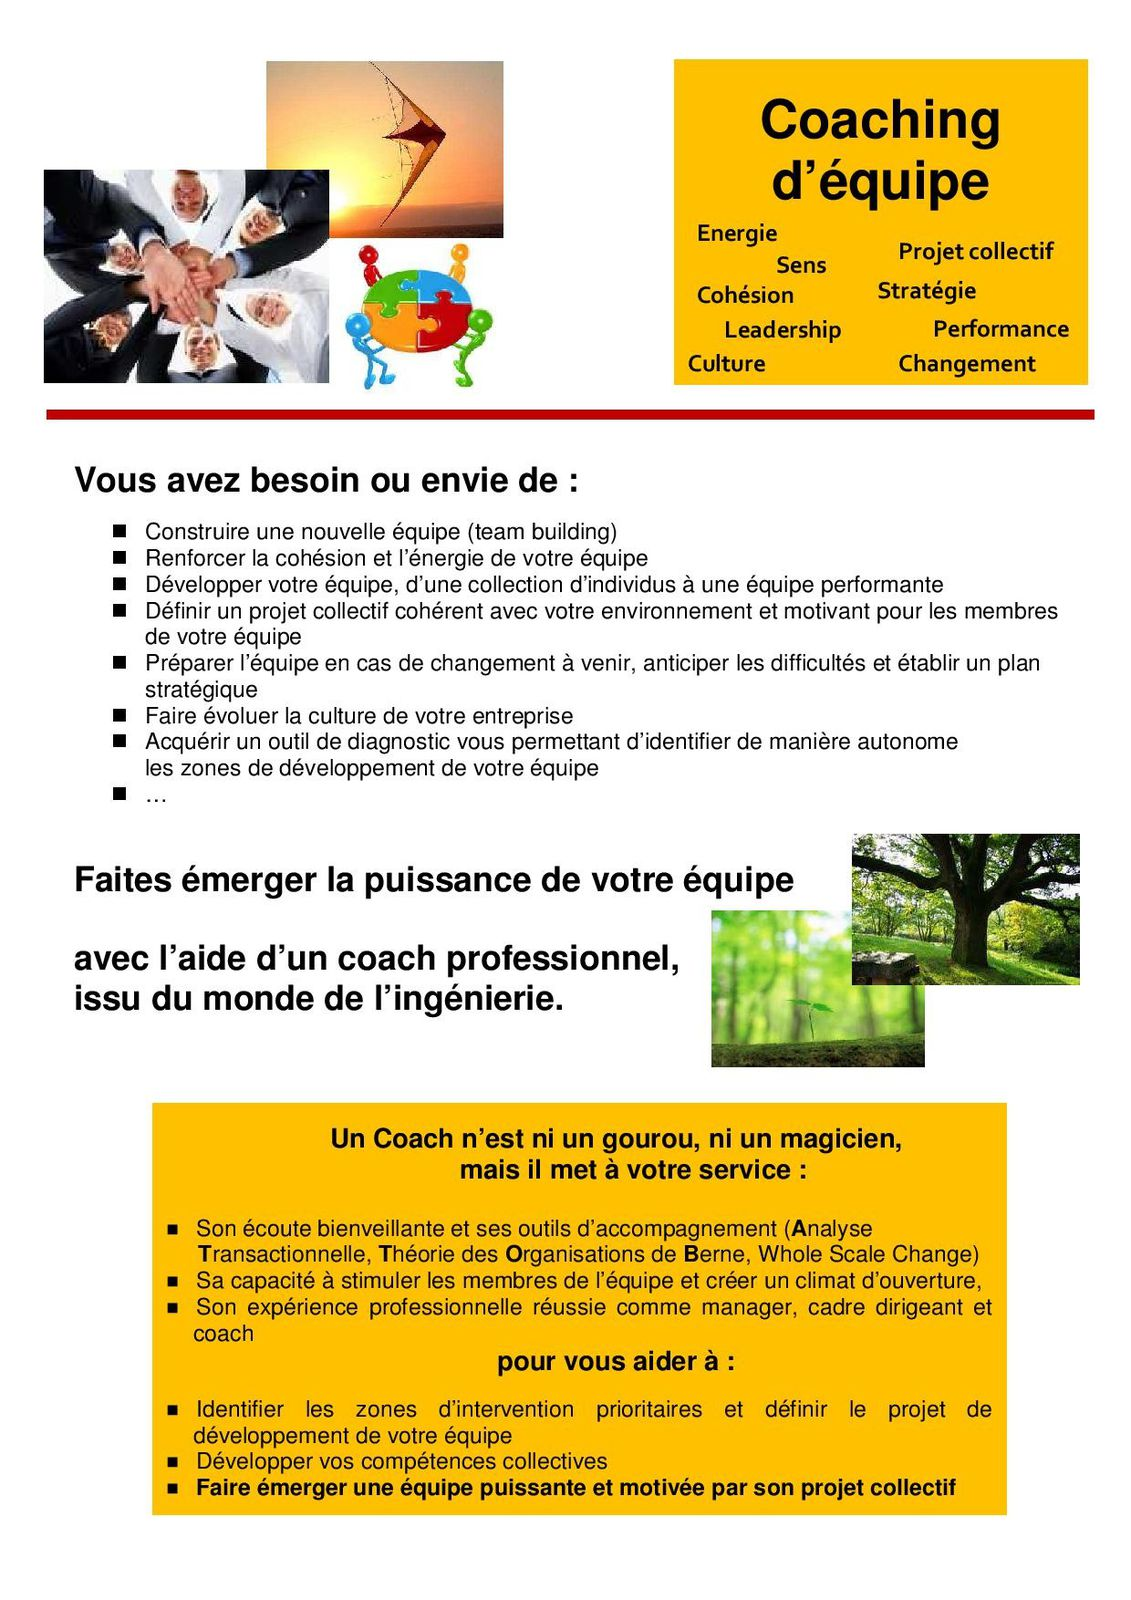 CoachingDequipe2015